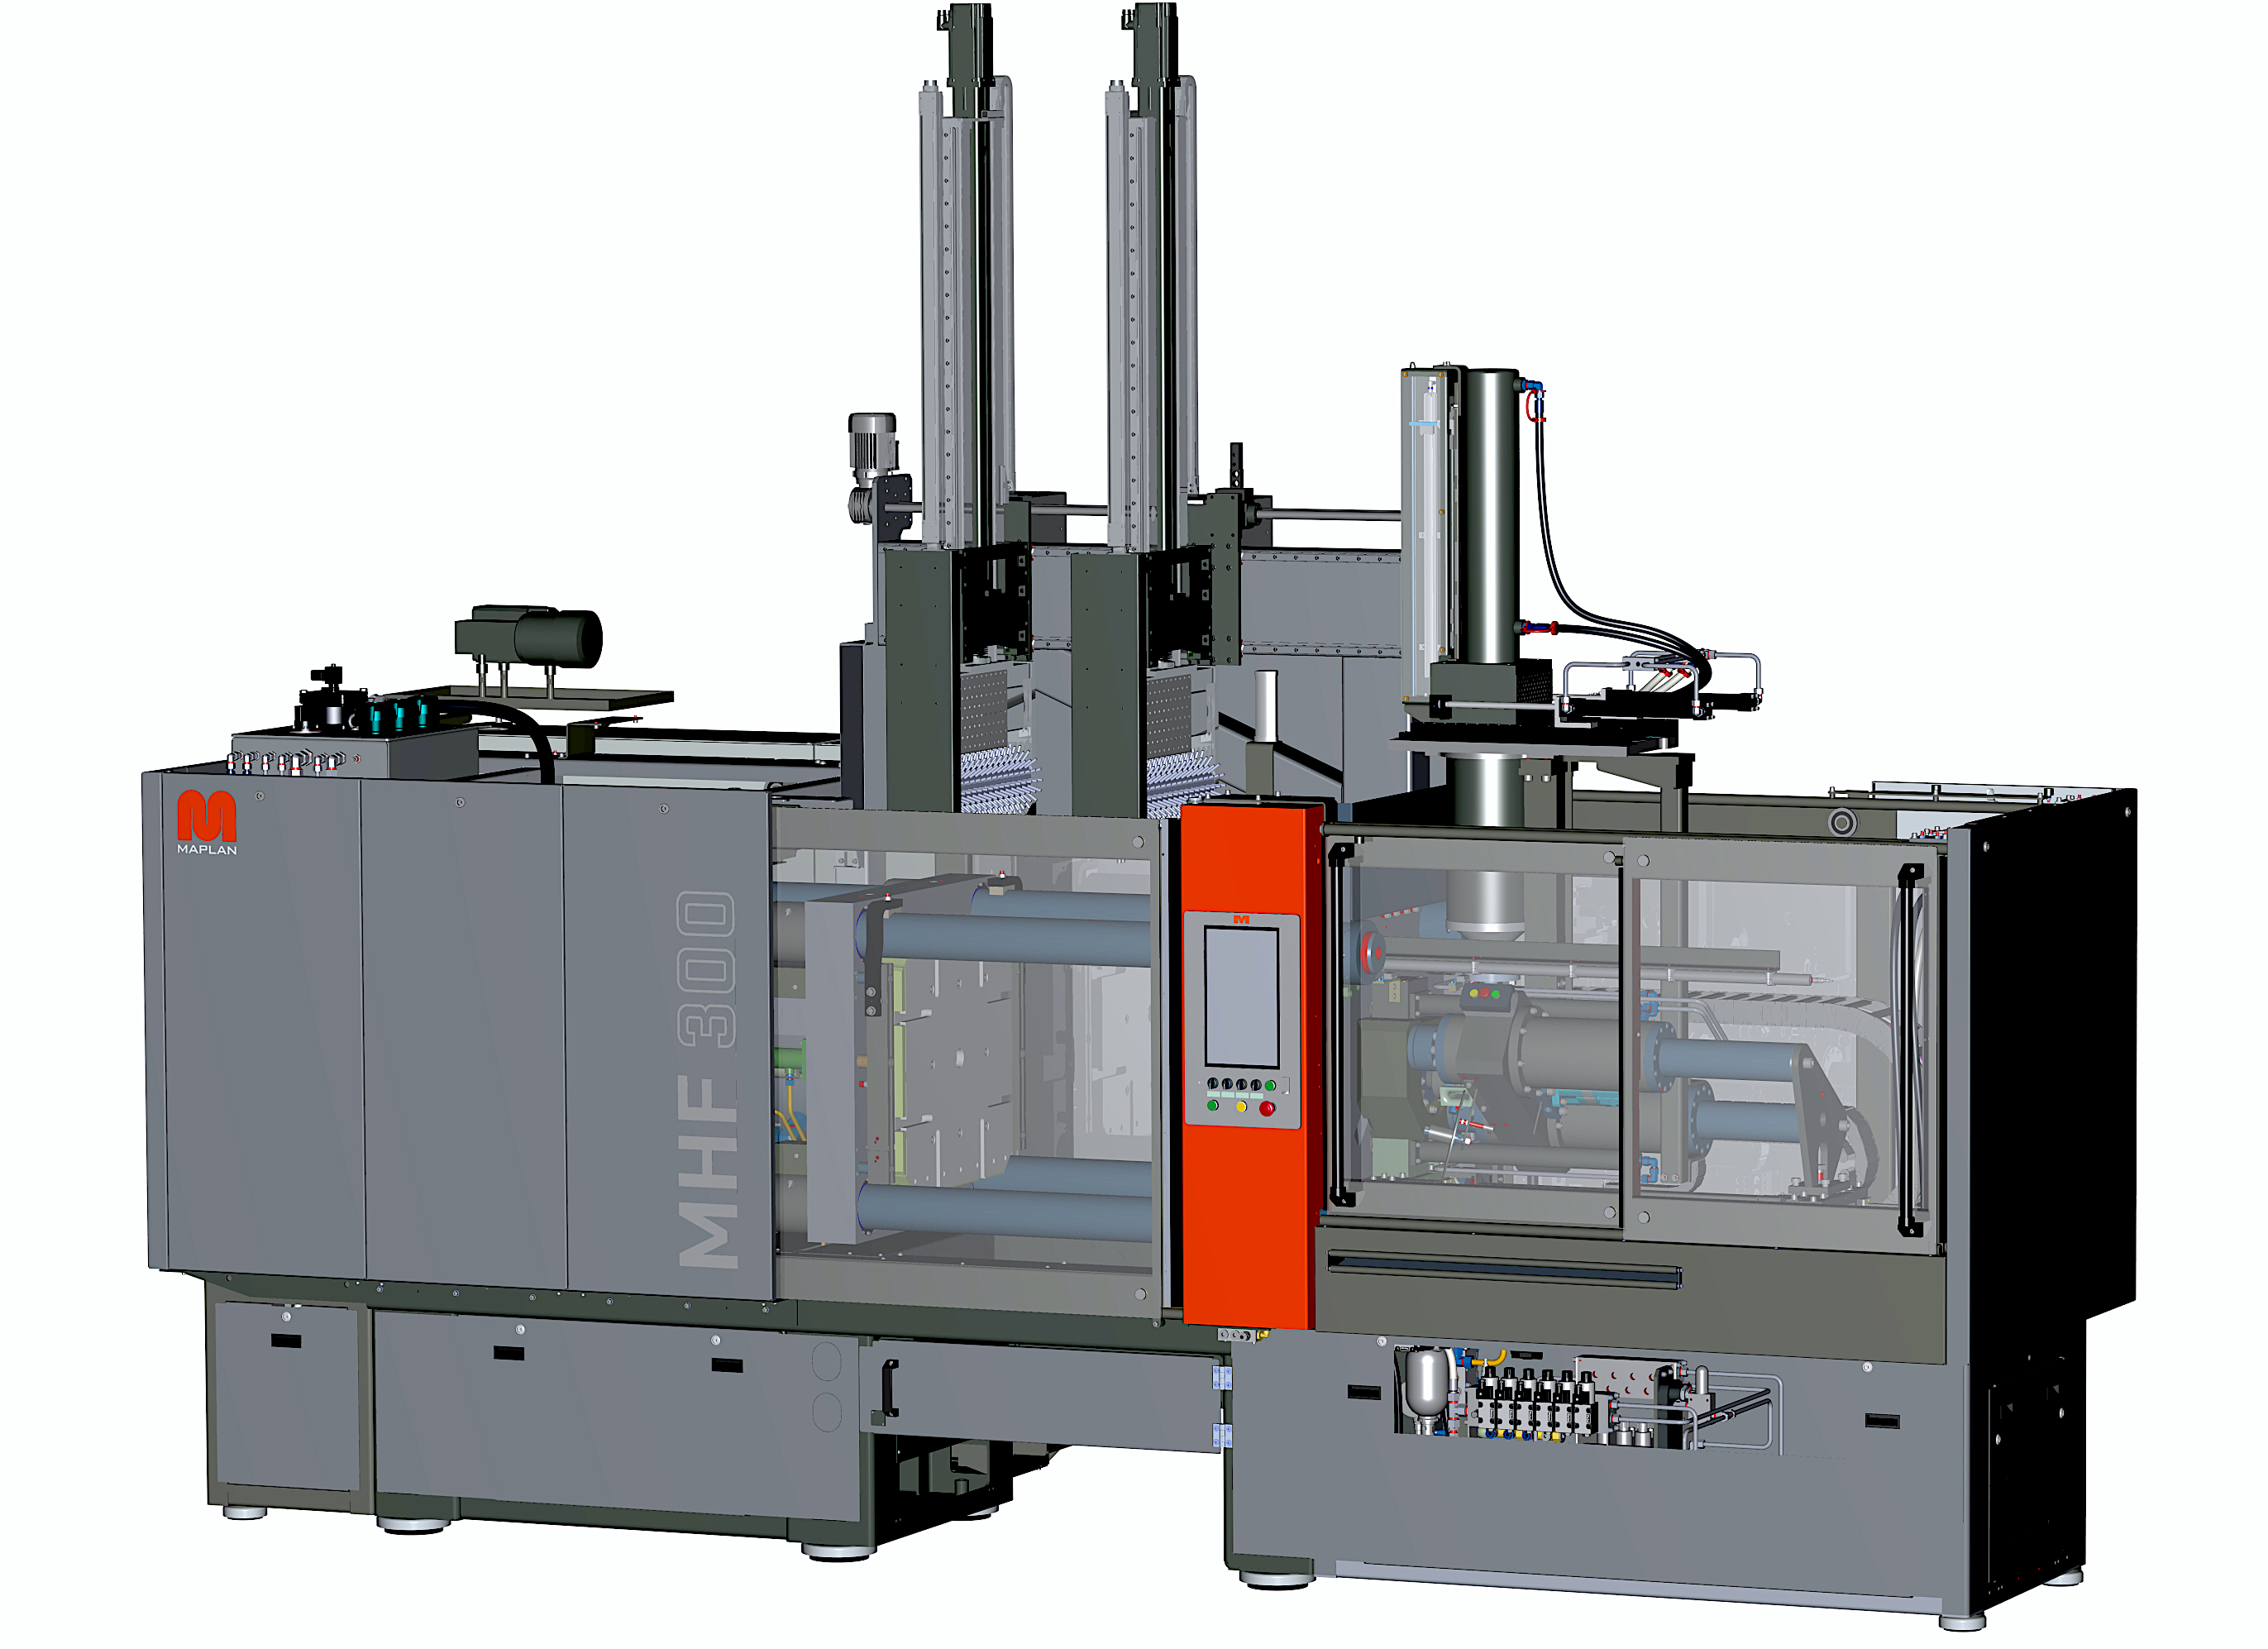 The hydraulic horizontal machine Rapidsup+/sup 700D/300 combined with a compacting device for processing HTV silicone and a servo-electrically driven double brush system for automatic part demoulding. (Source: Maplan)